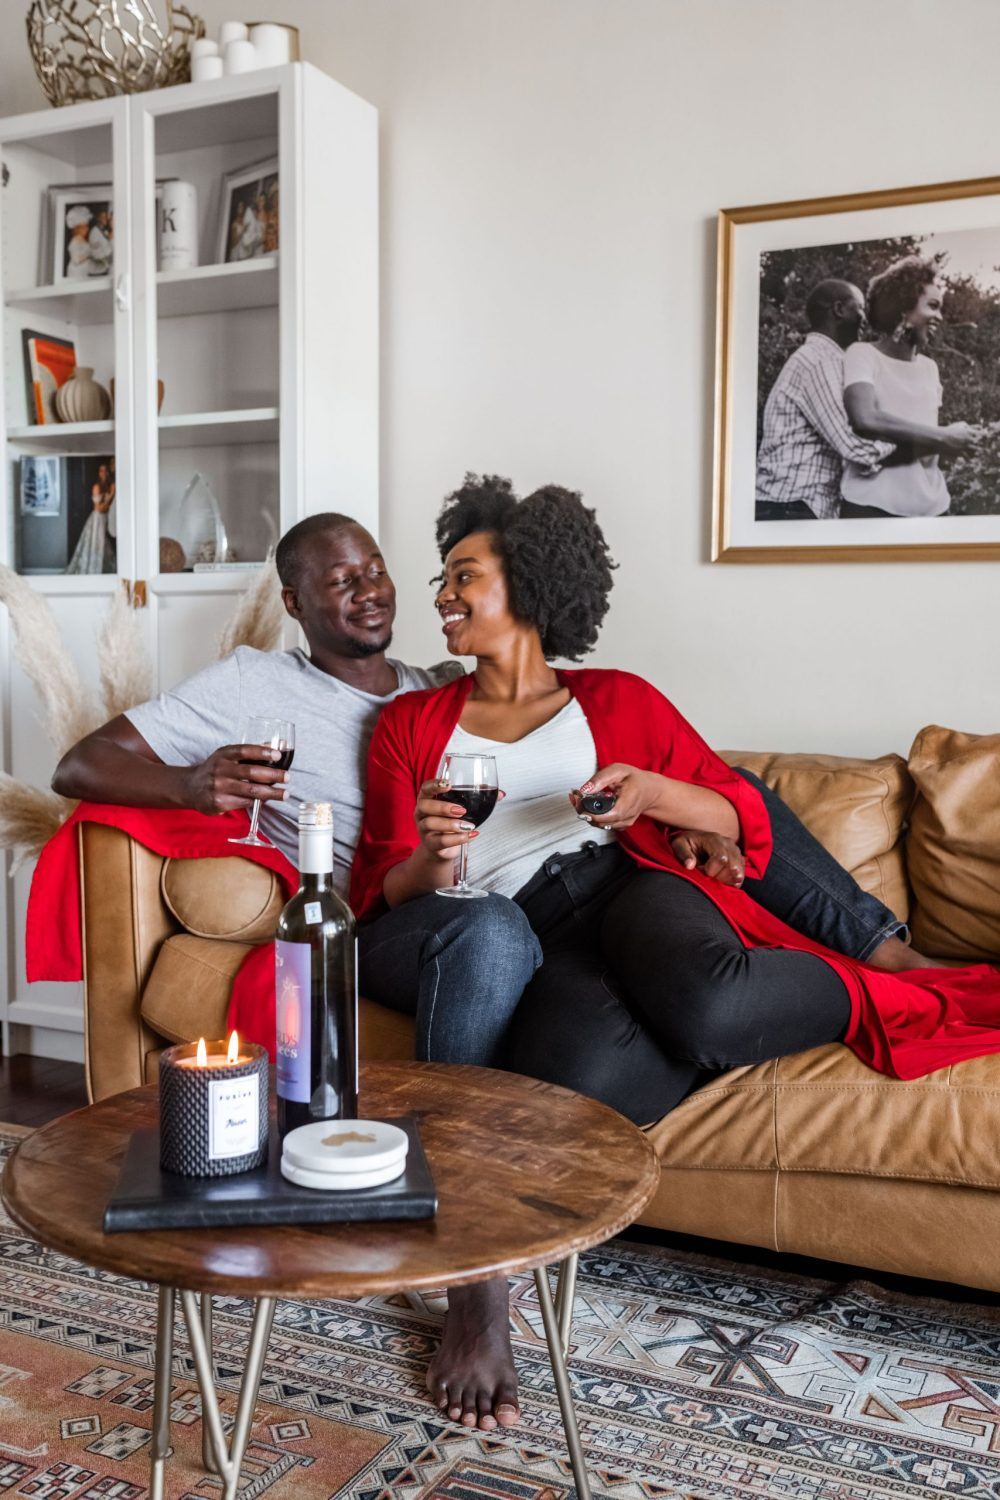 Ijeoma and Jonathan Kola chilling on and smiling at each other on couch with wine on Valentine's Day - Stay at Home Valentine's Day Ideas